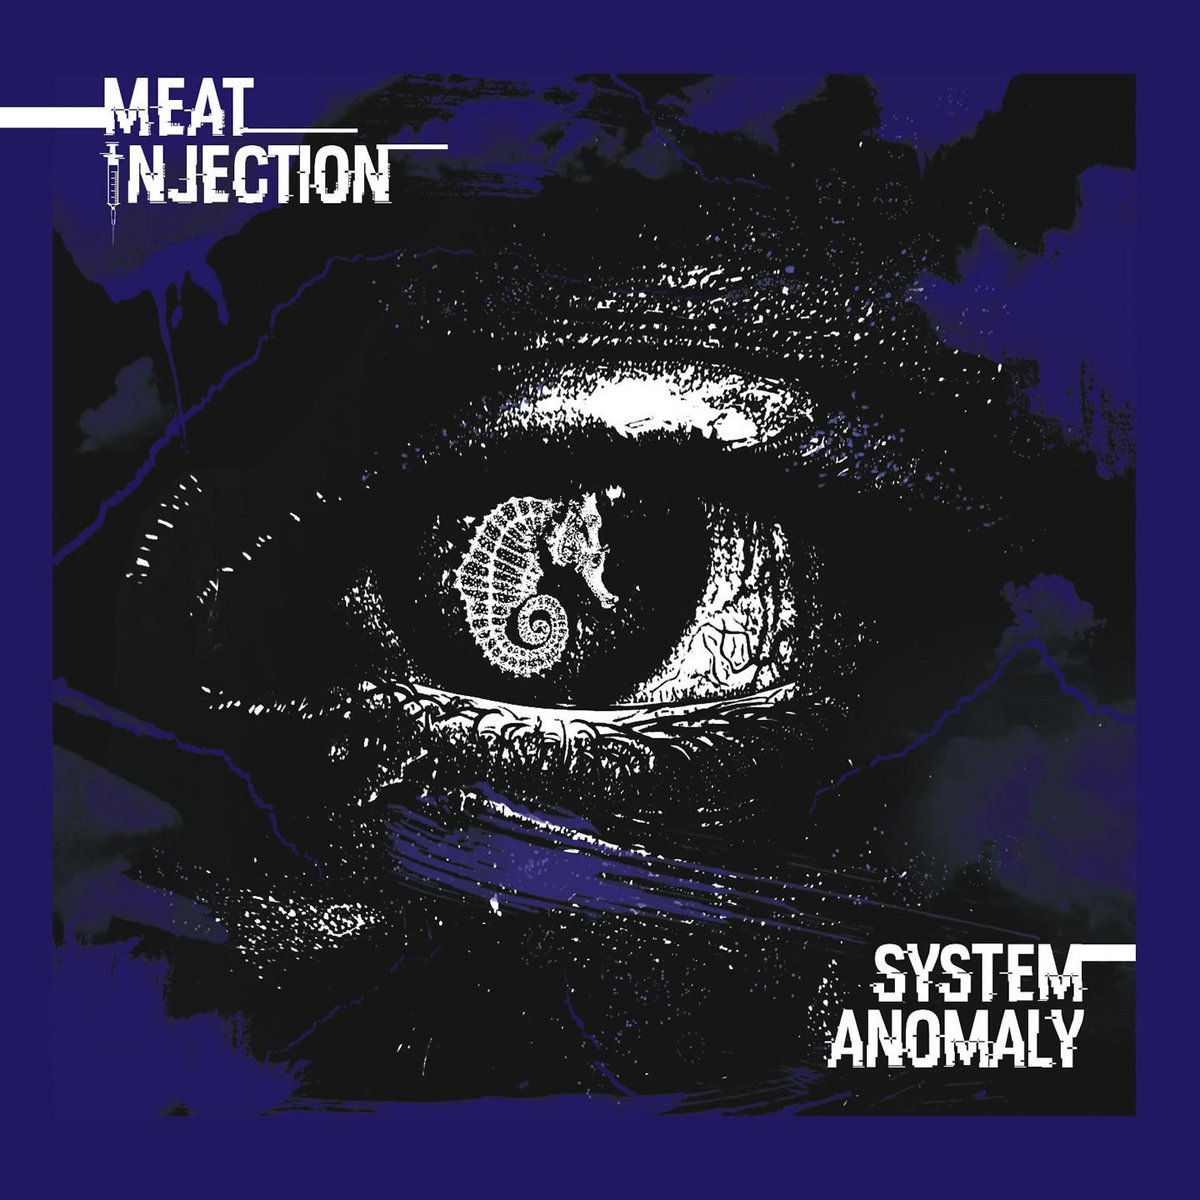 Meat Injection – System Anomaly (2020) [FLAC]